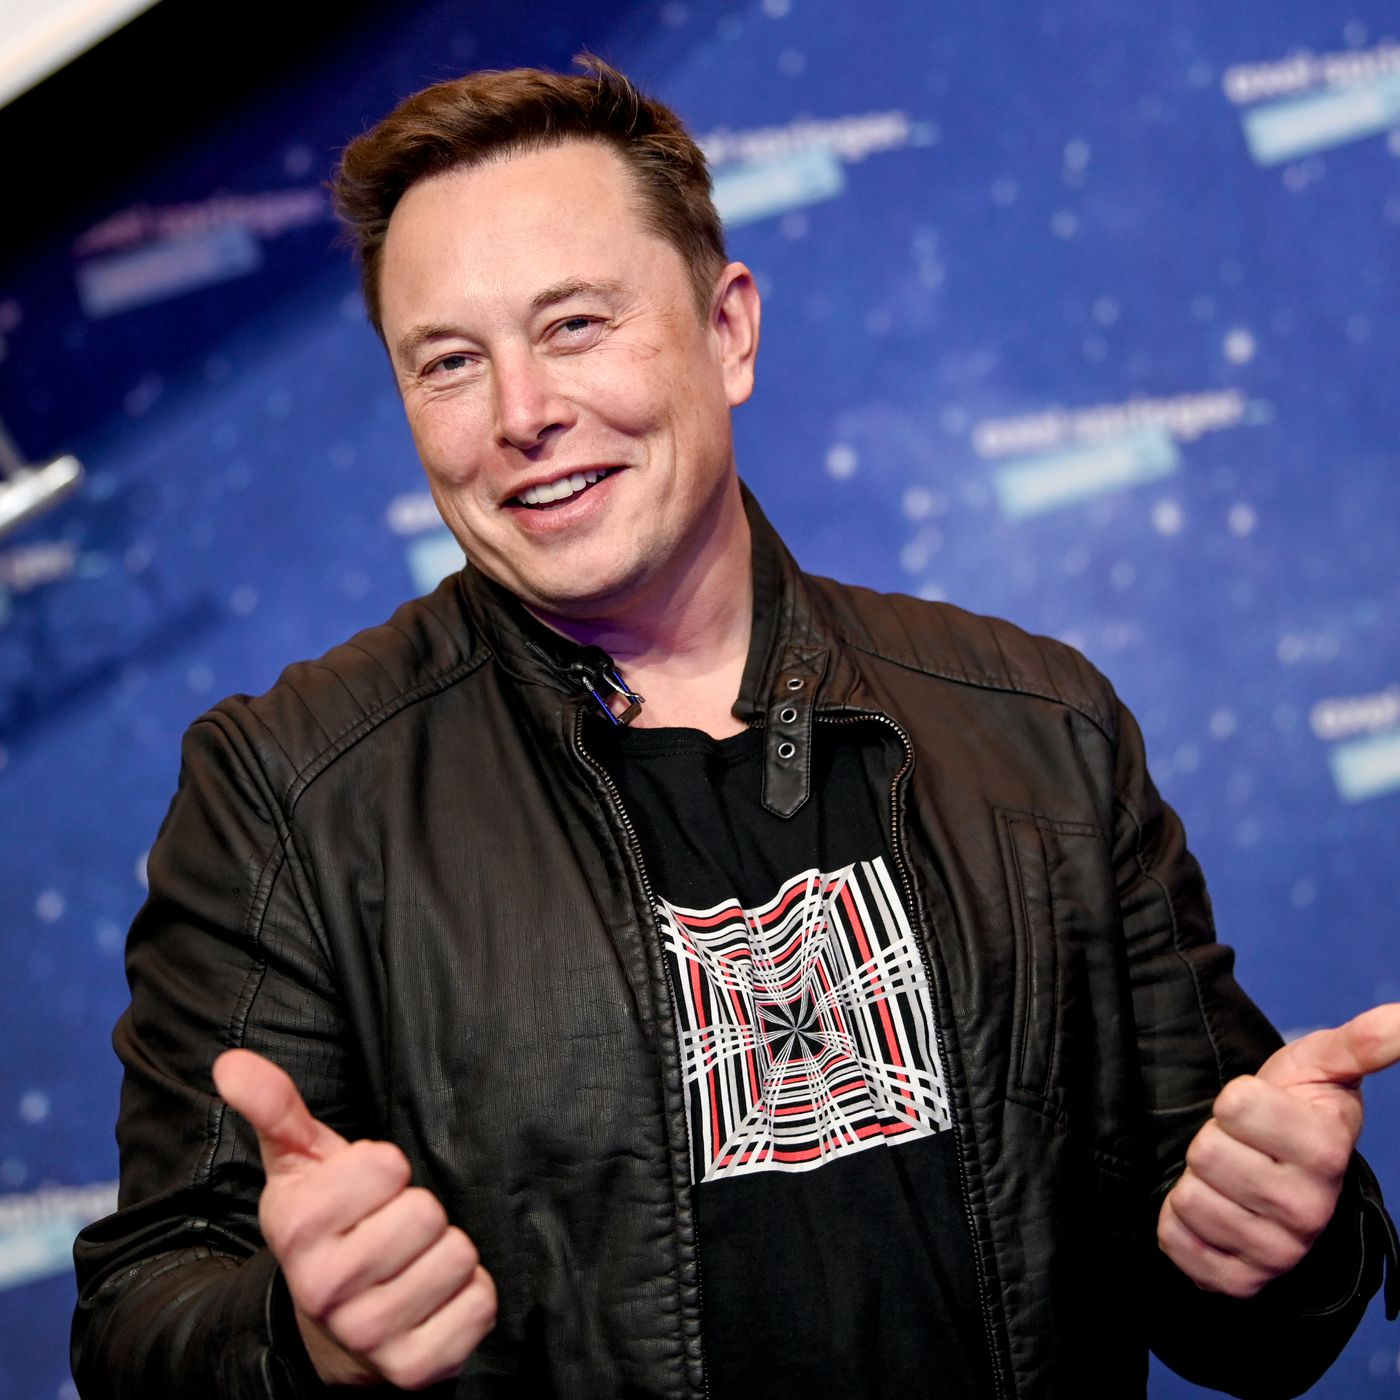 Covid-19 Travel Rules - US in Choas - Musk No 1 richest person alive